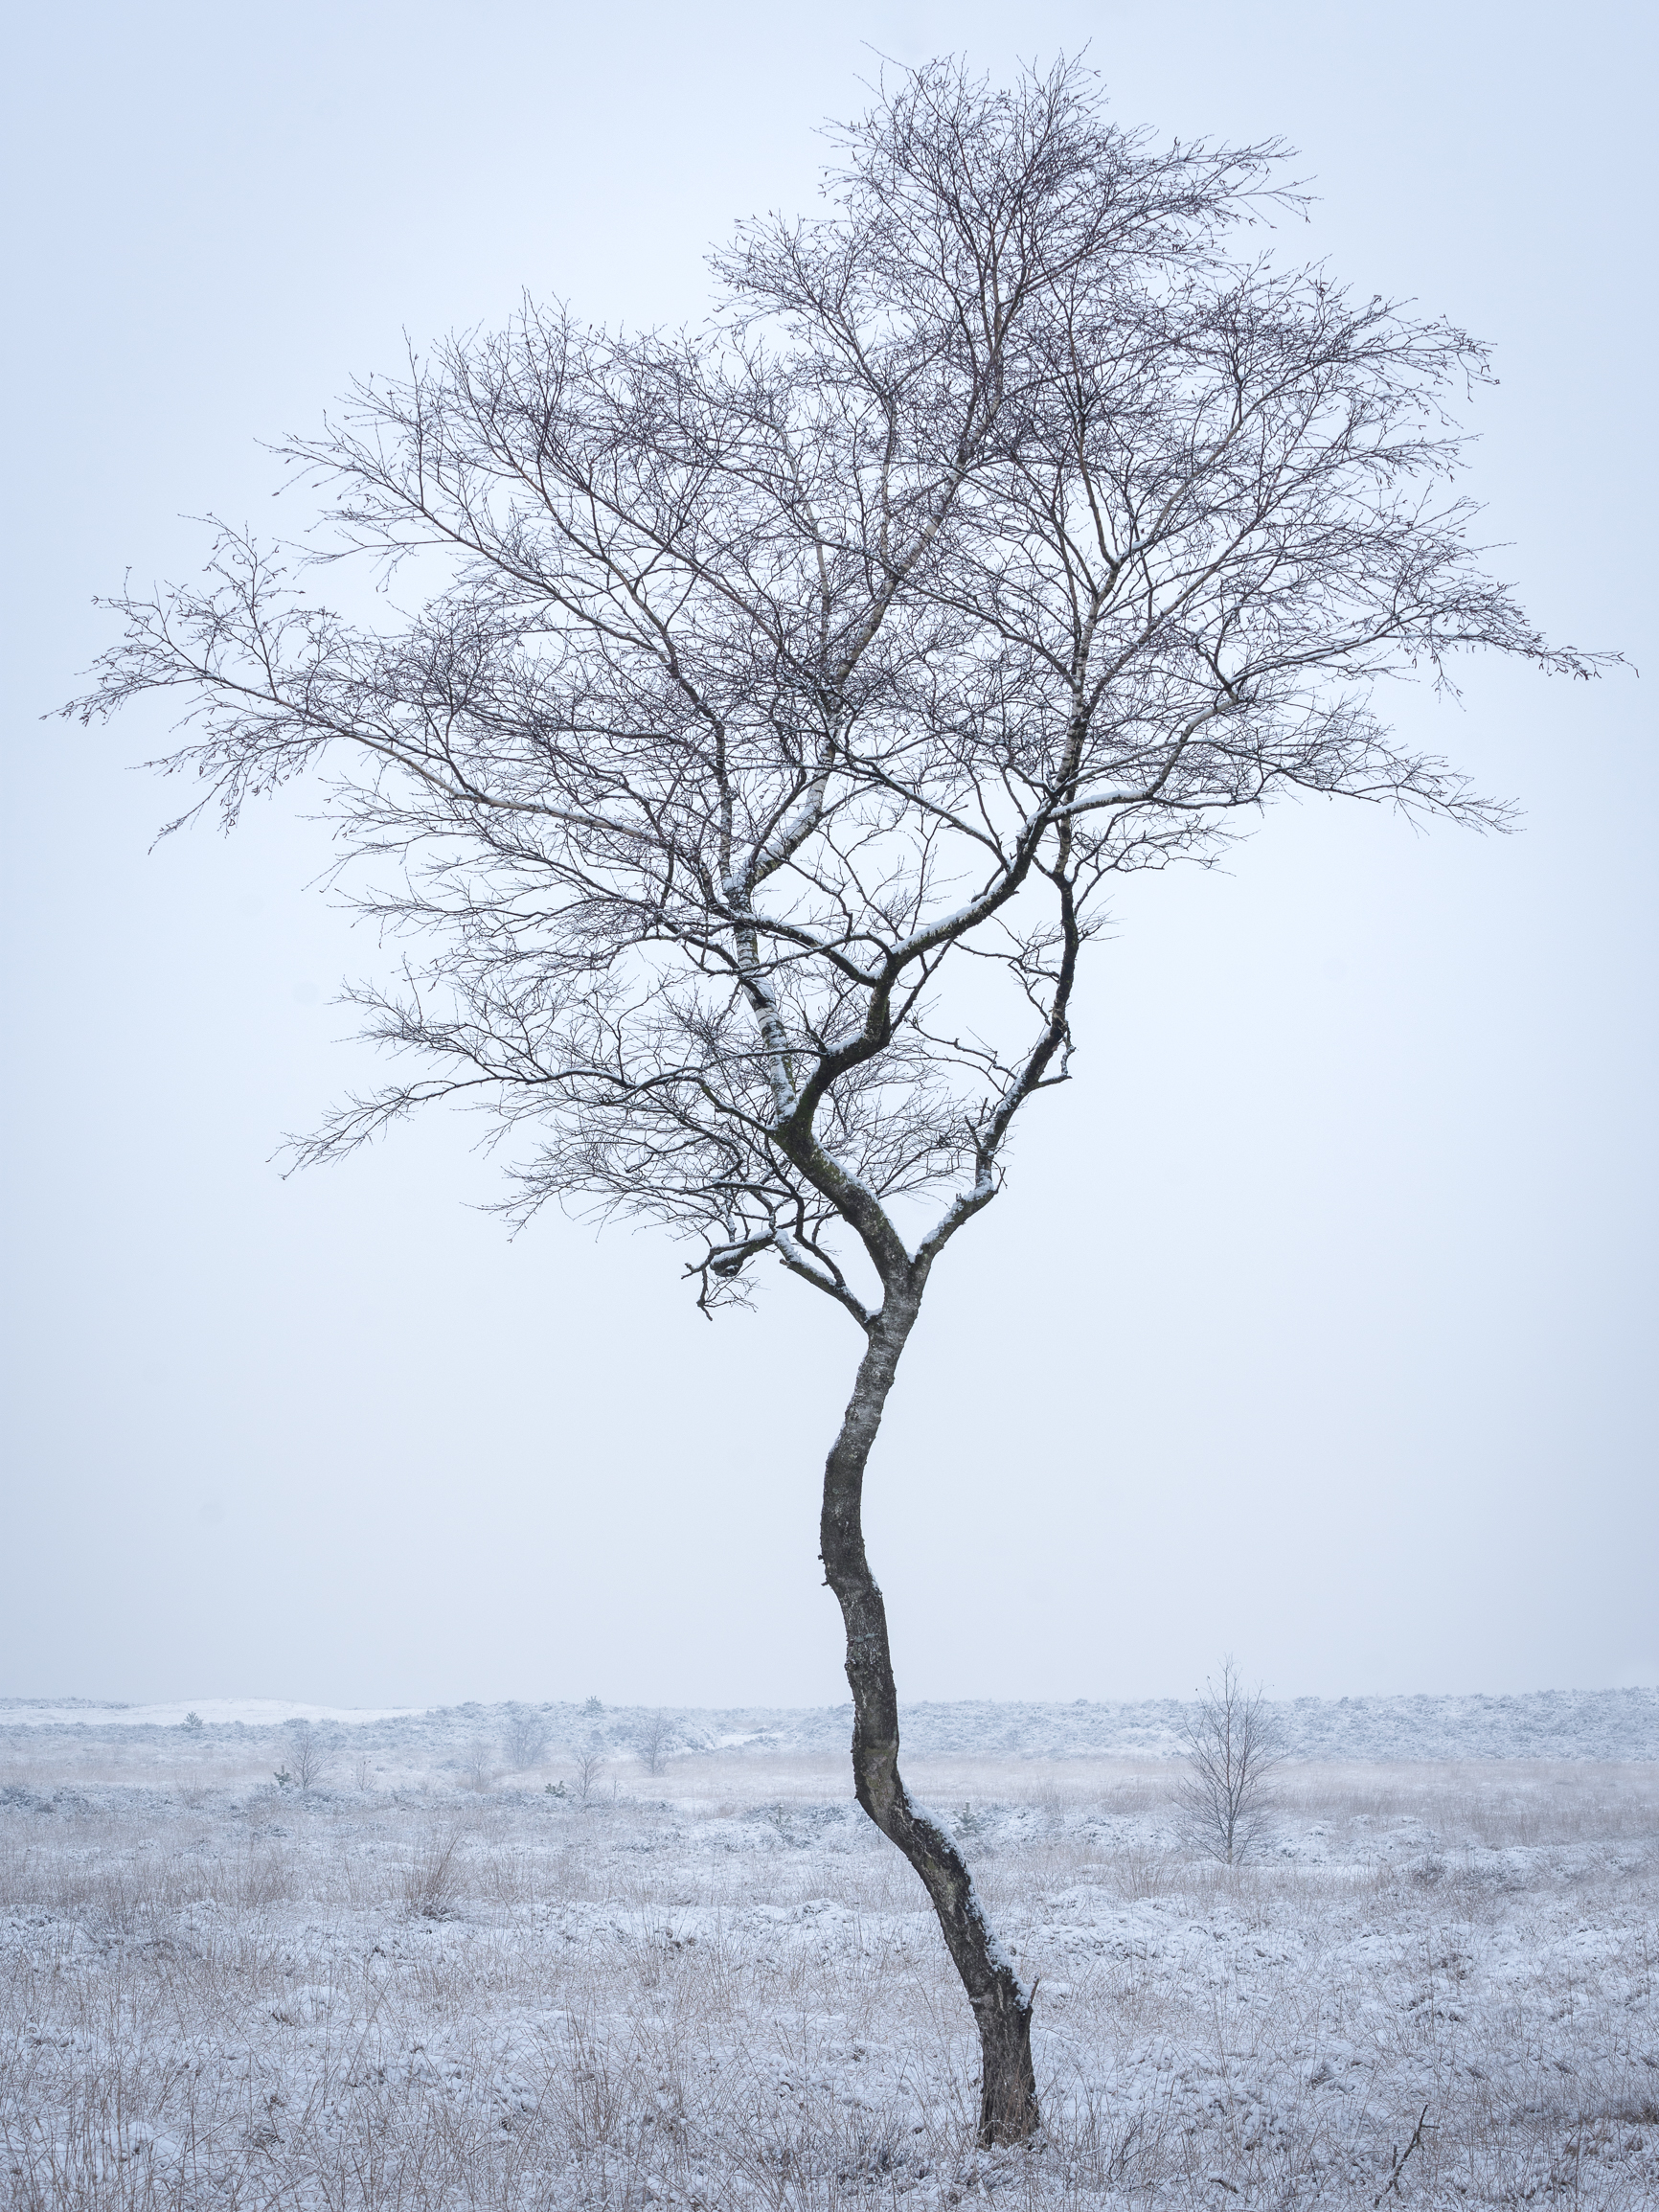 Lonely tree. iso 100, f11, 1/8s, 70mm.